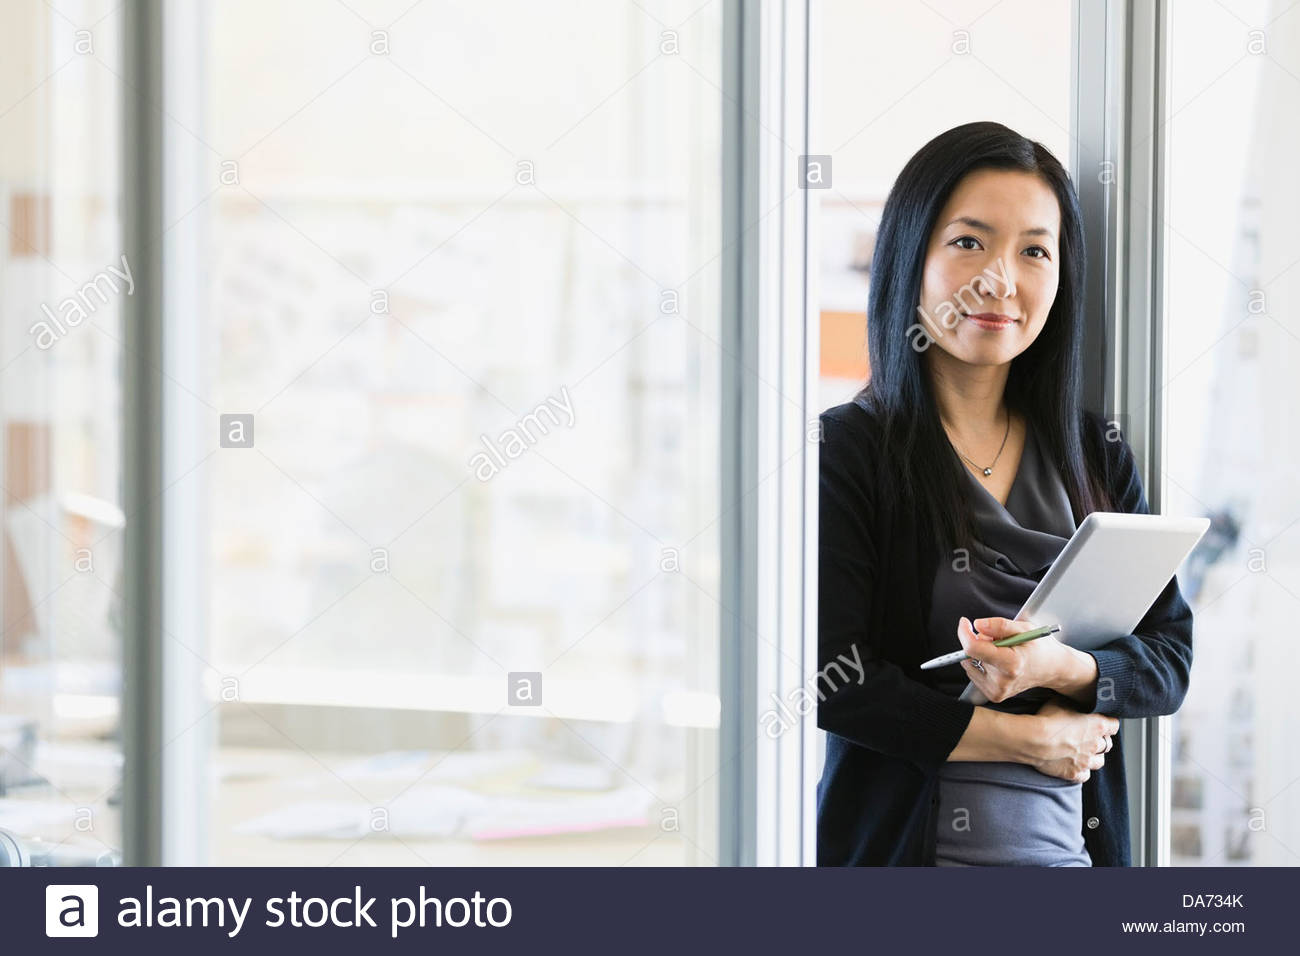 Businesswoman holding digital tablet in office - Stock Image